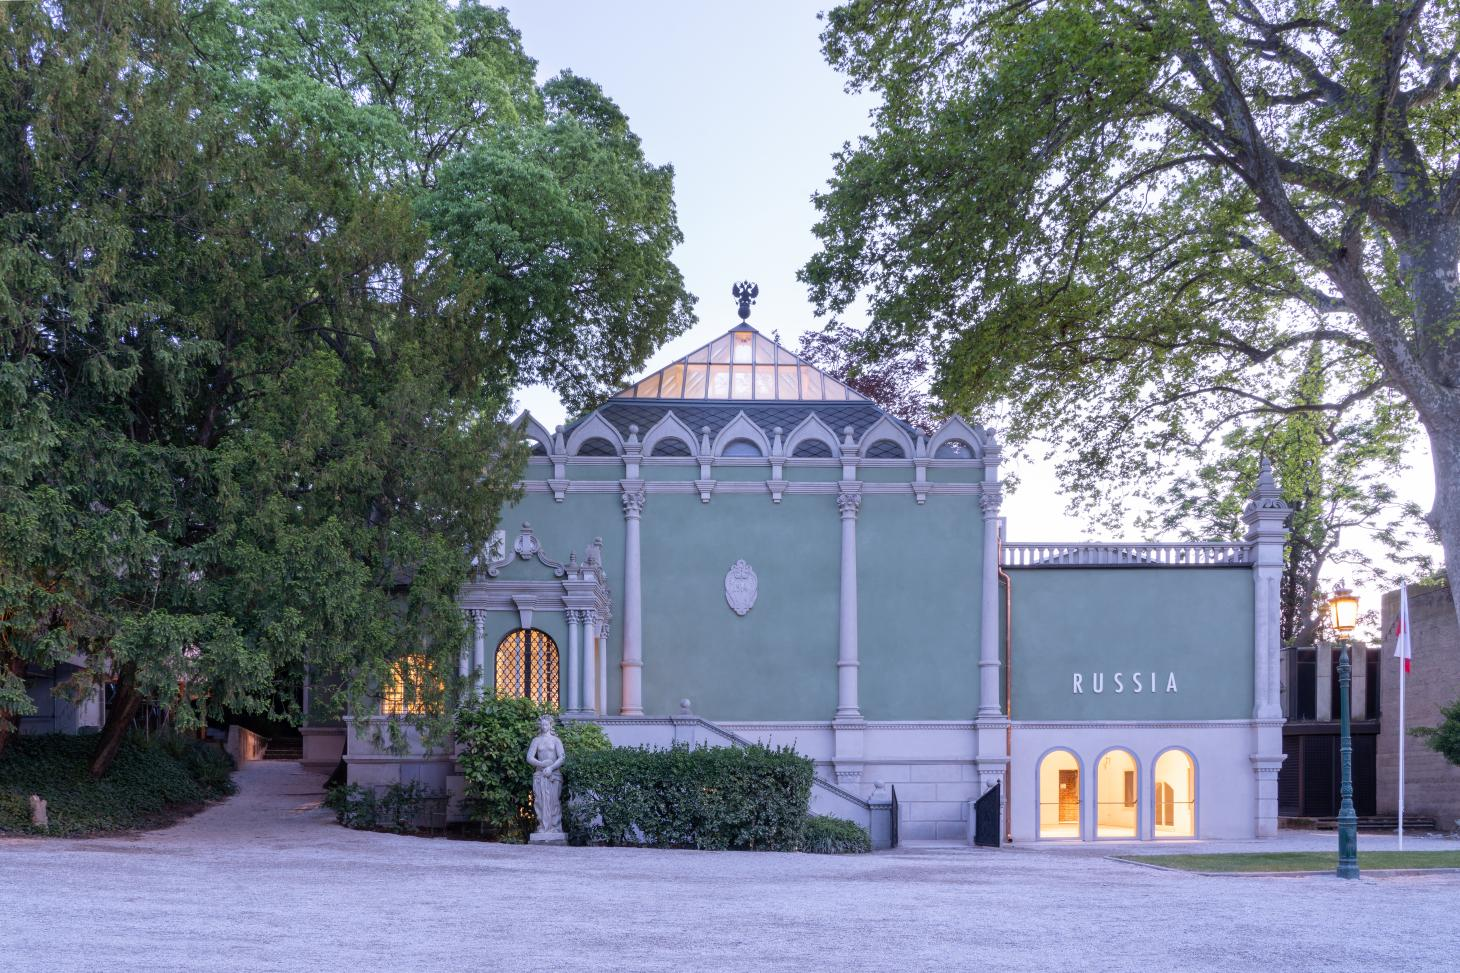 the Russian pavilion at the Giardini park in Venice was renovated for the 2021 architecture biennale